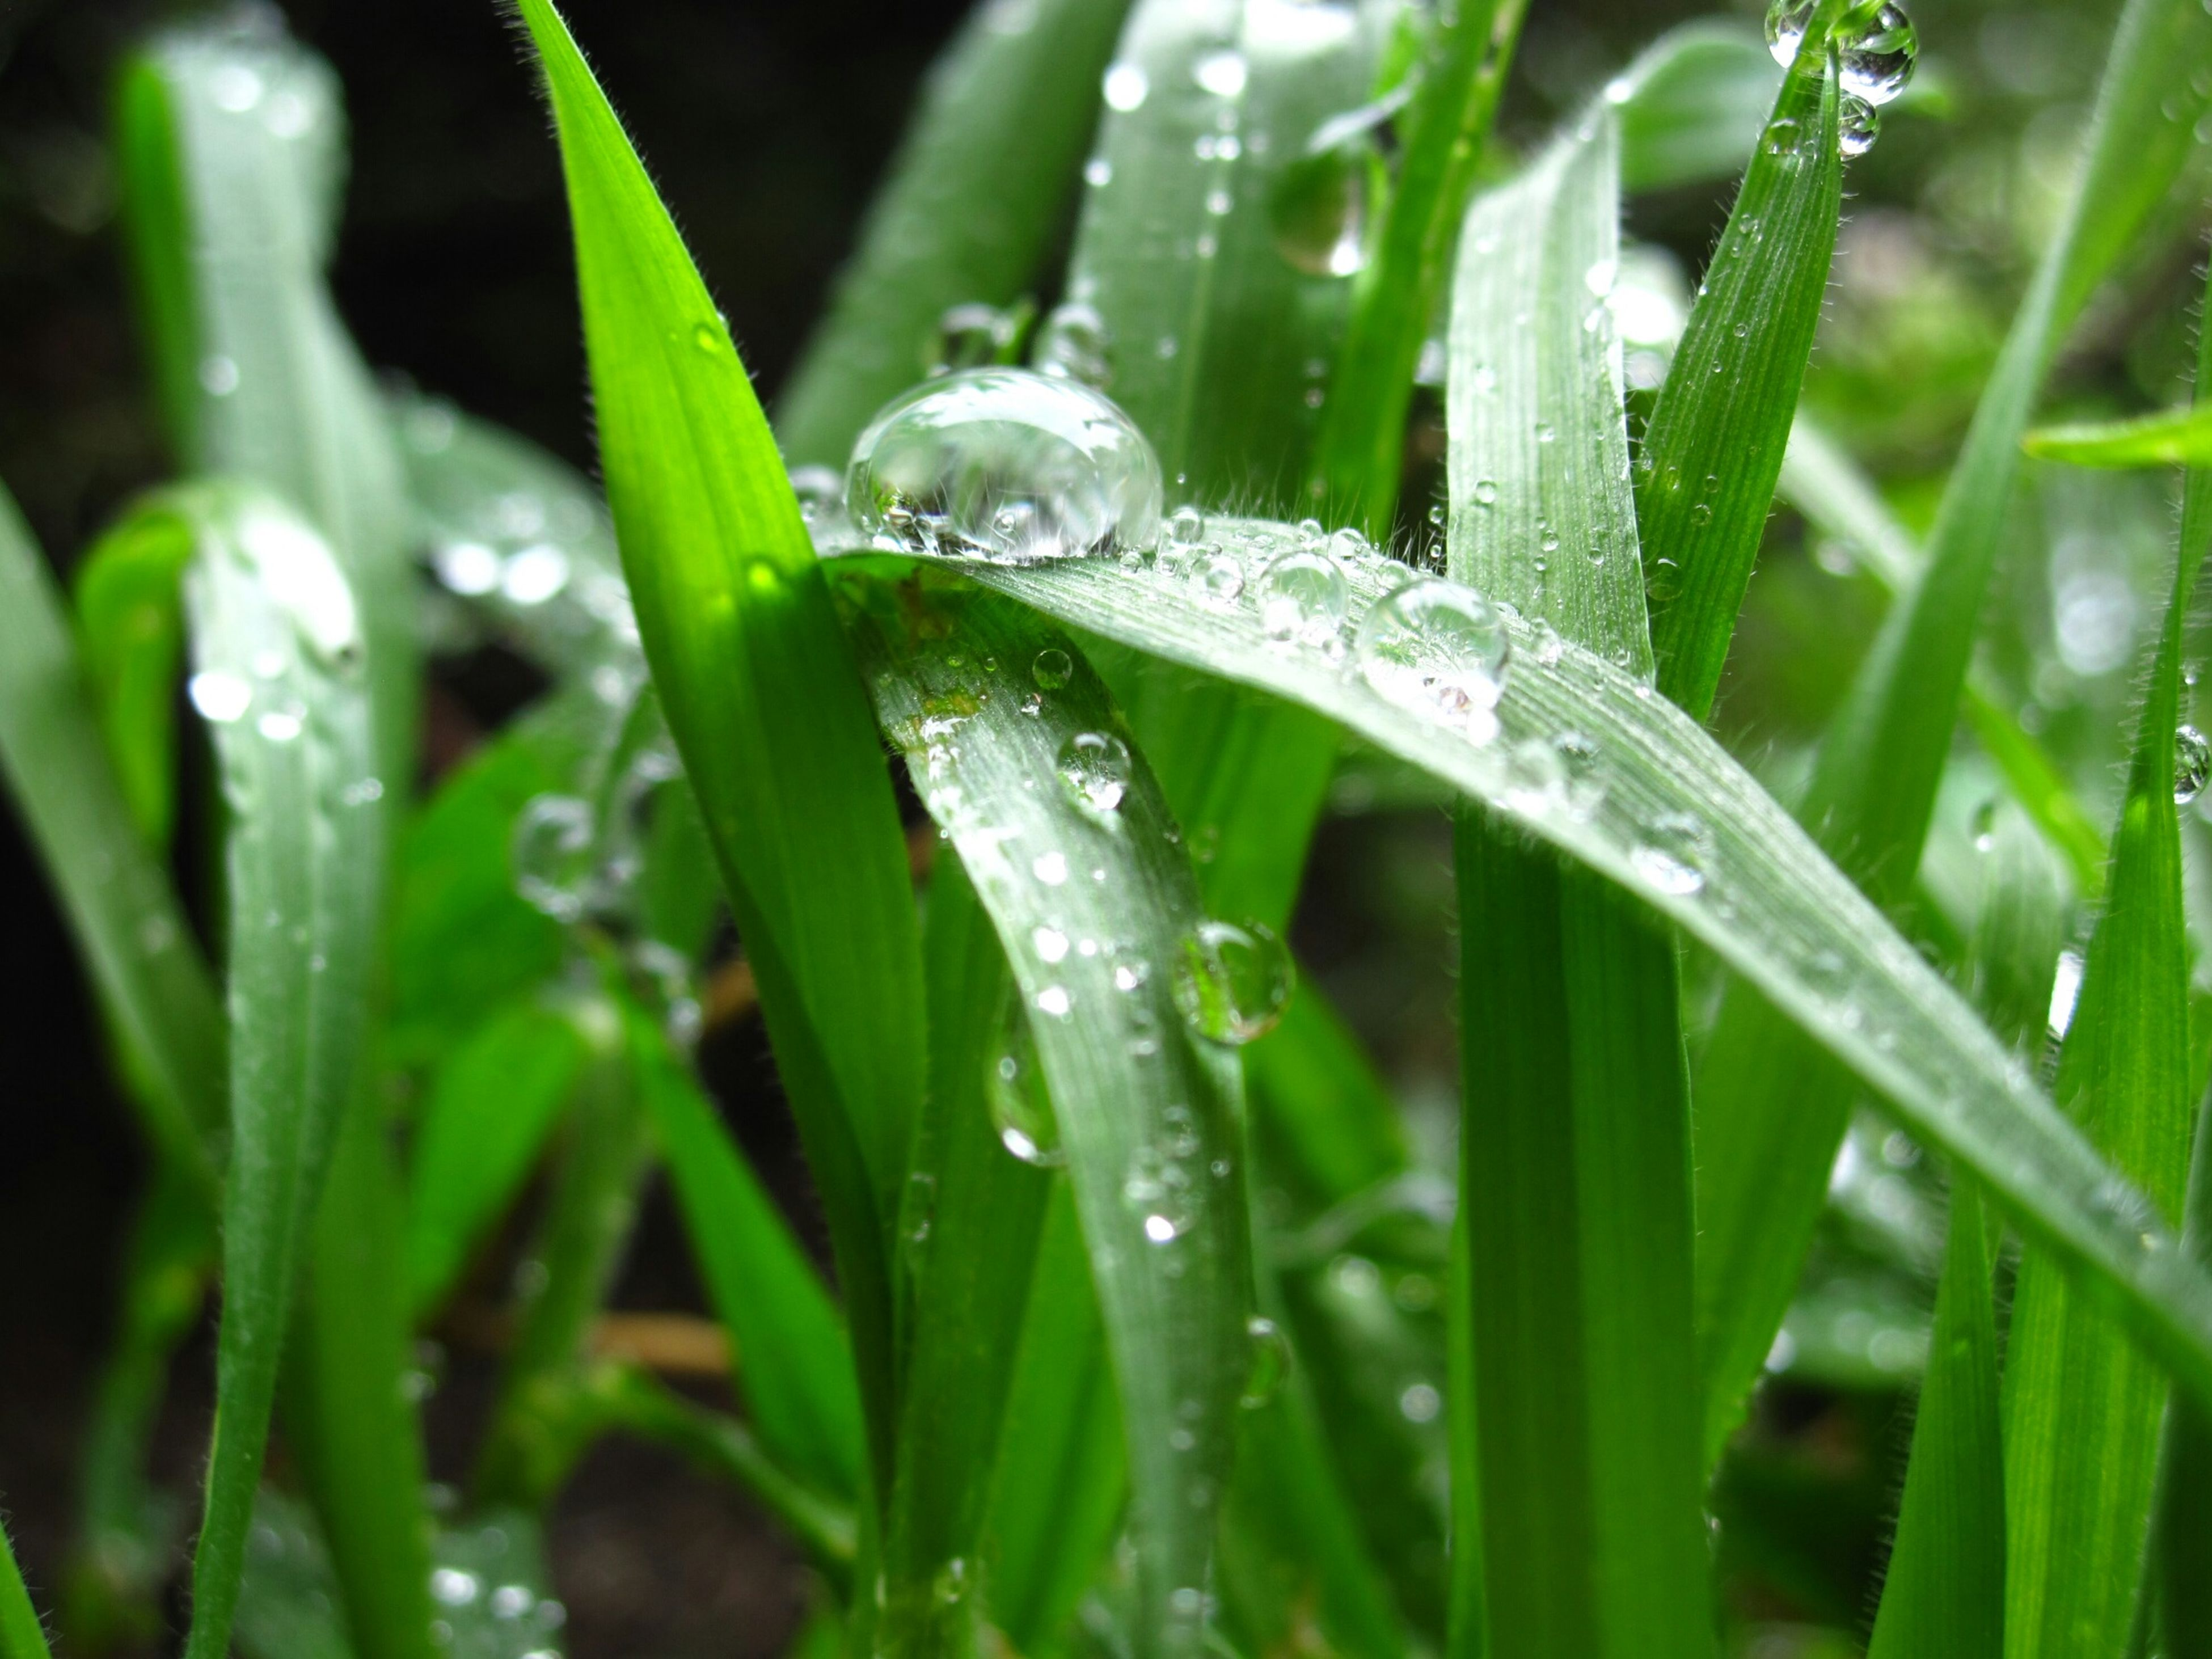 drop, water, wet, grass, green color, close-up, blade of grass, dew, growth, nature, freshness, beauty in nature, plant, selective focus, fragility, focus on foreground, droplet, water drop, raindrop, purity